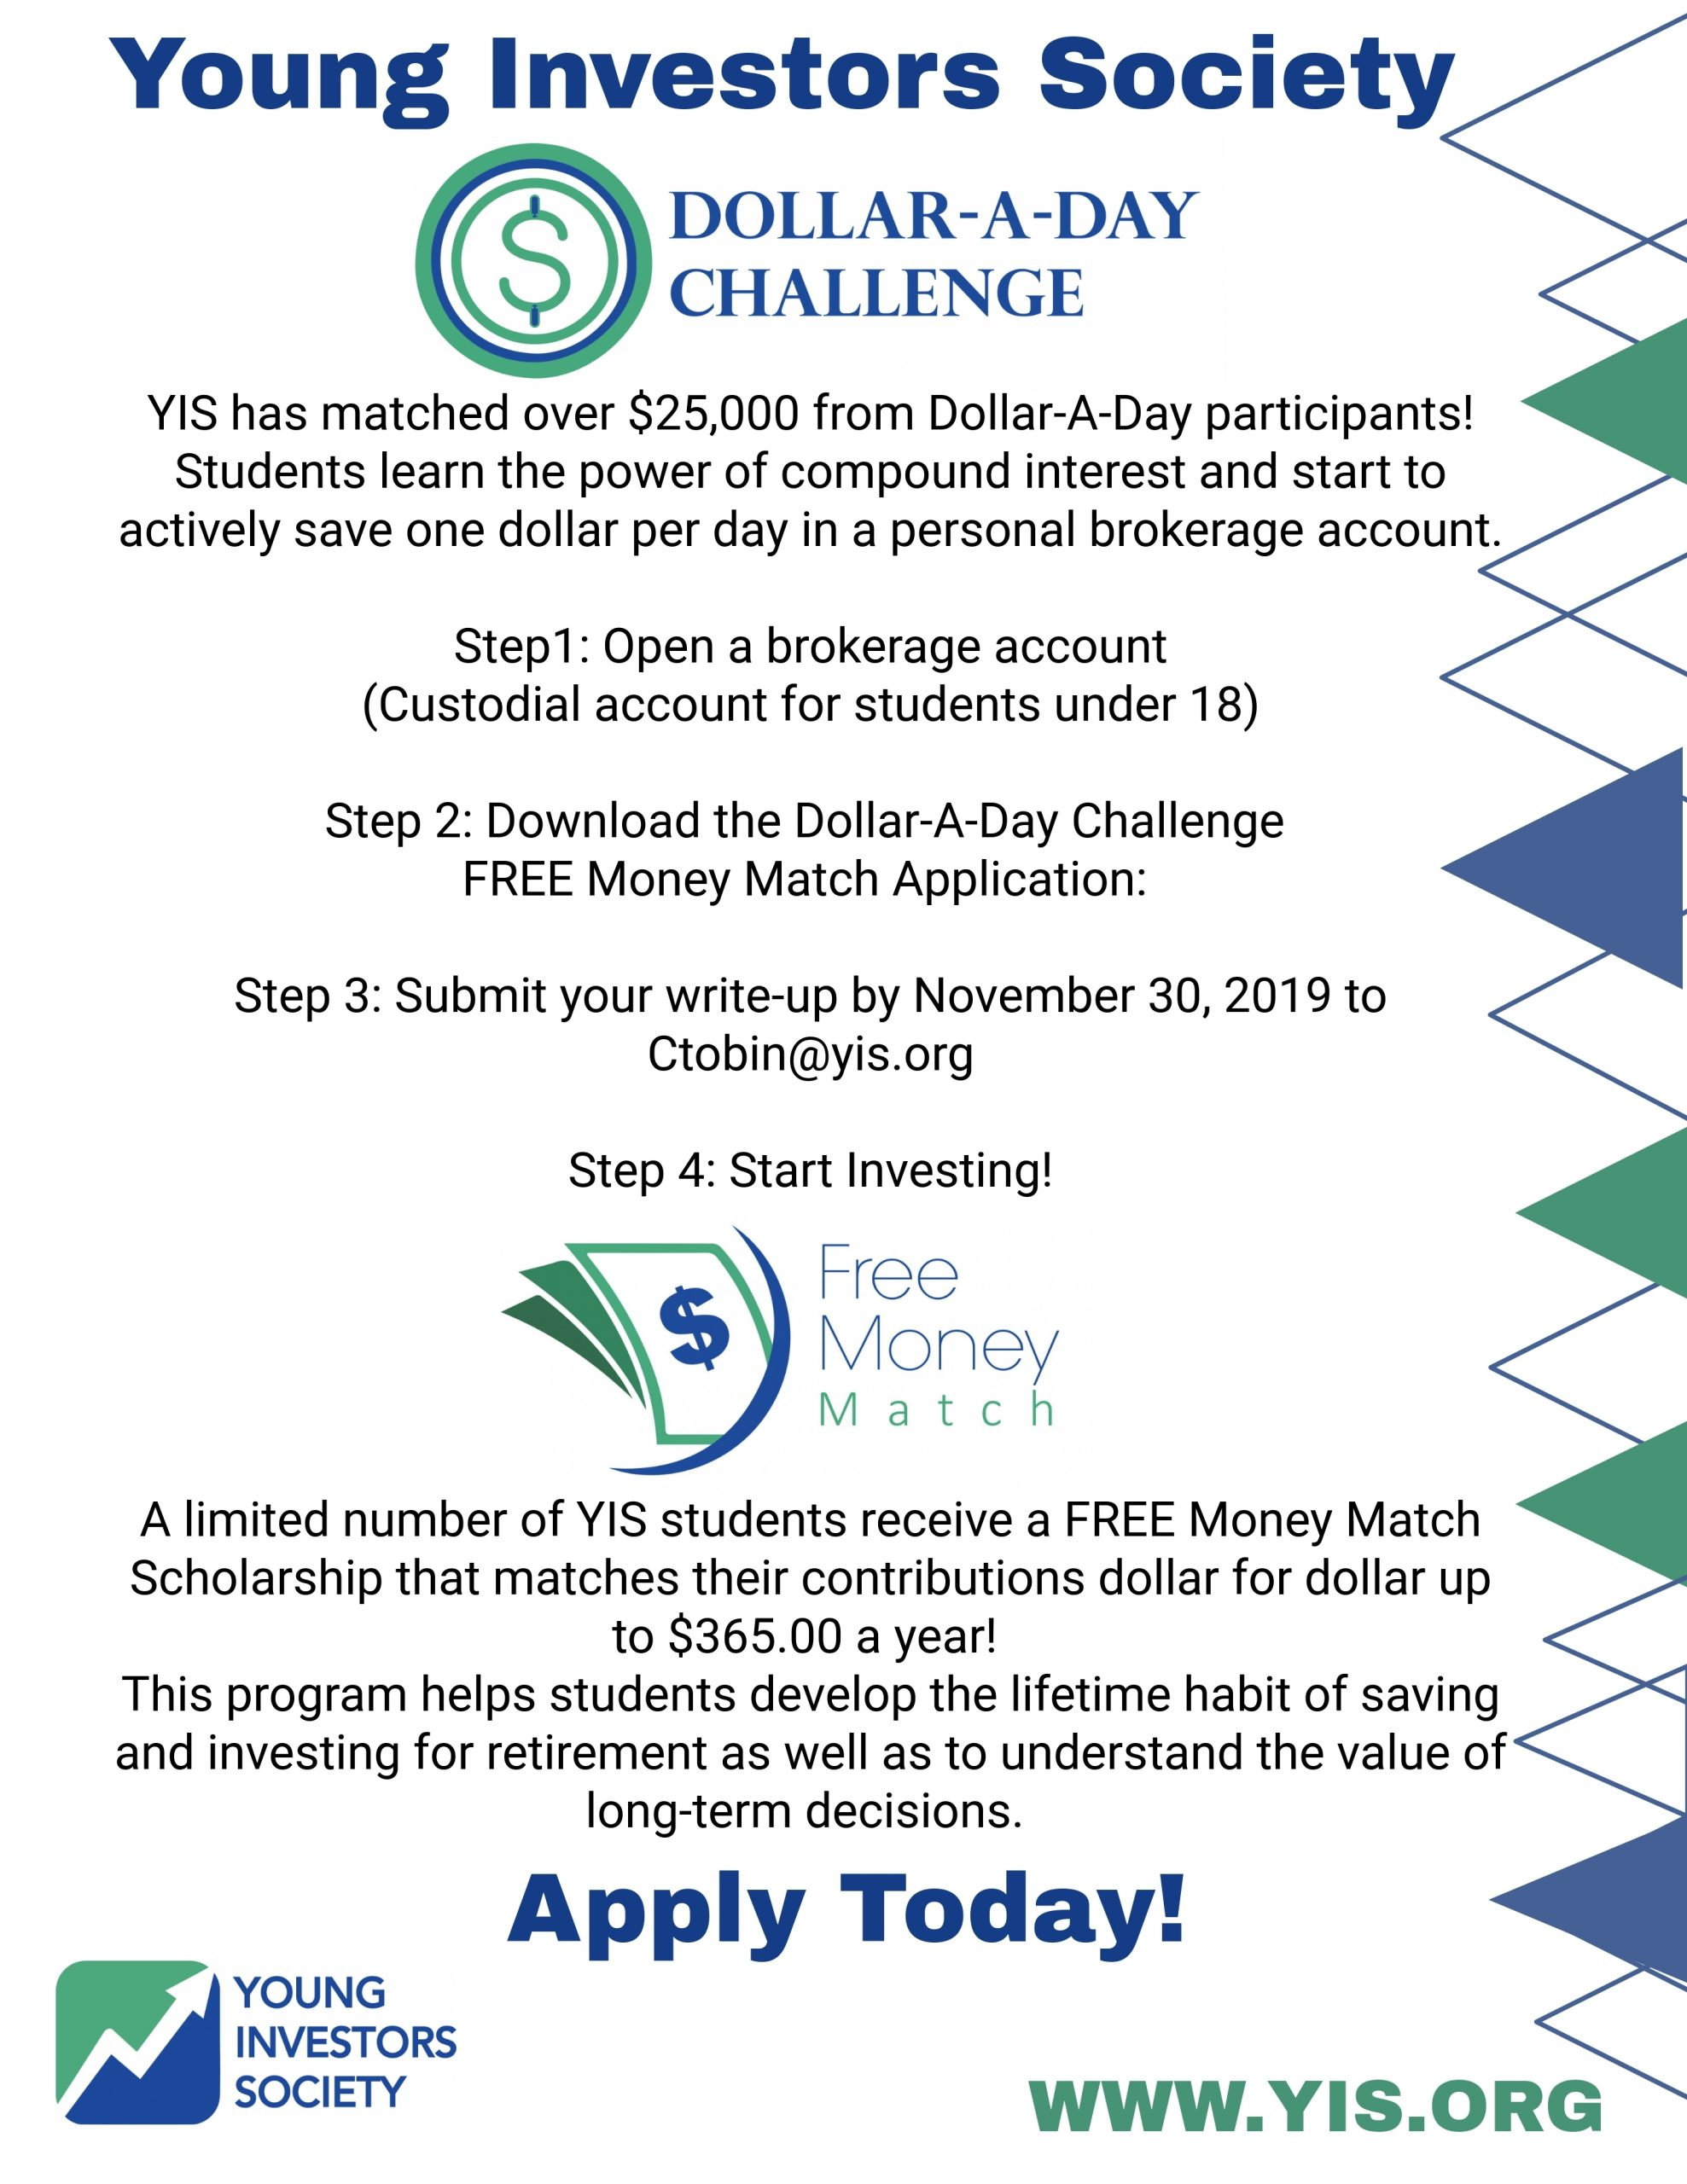 Dollar-A-Day Challenge - Young Investors Society